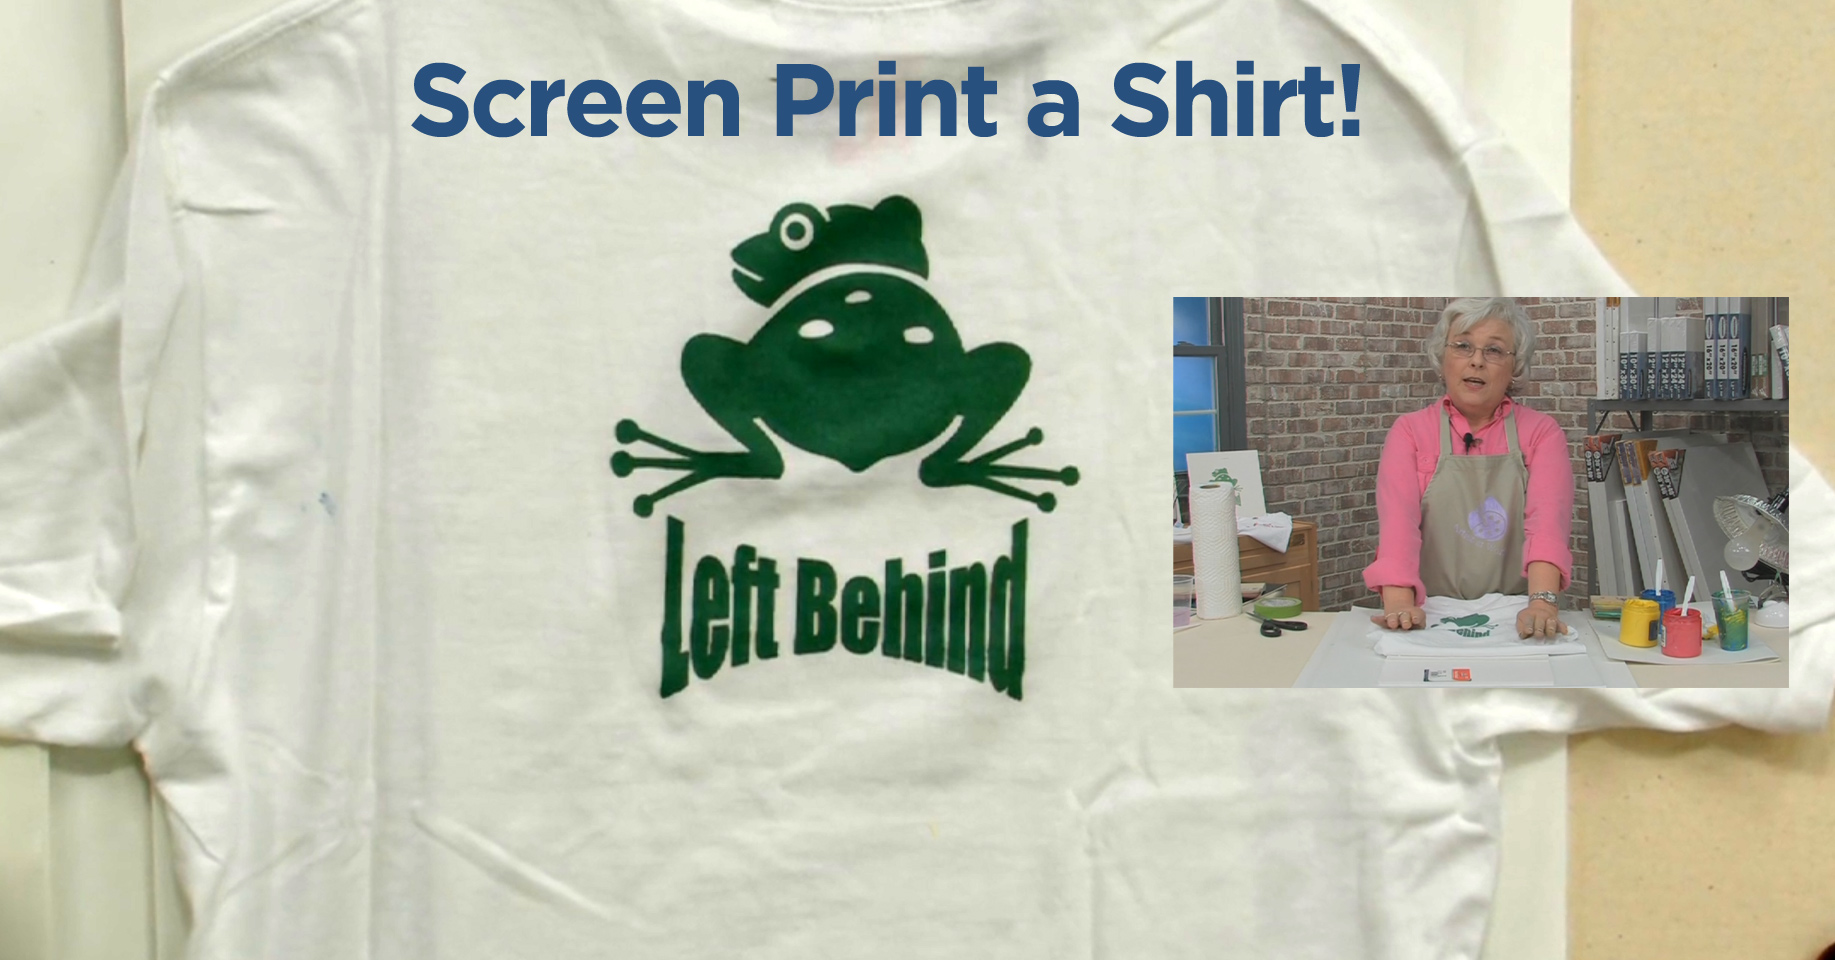 How To Begin Screen Printing a Shirt